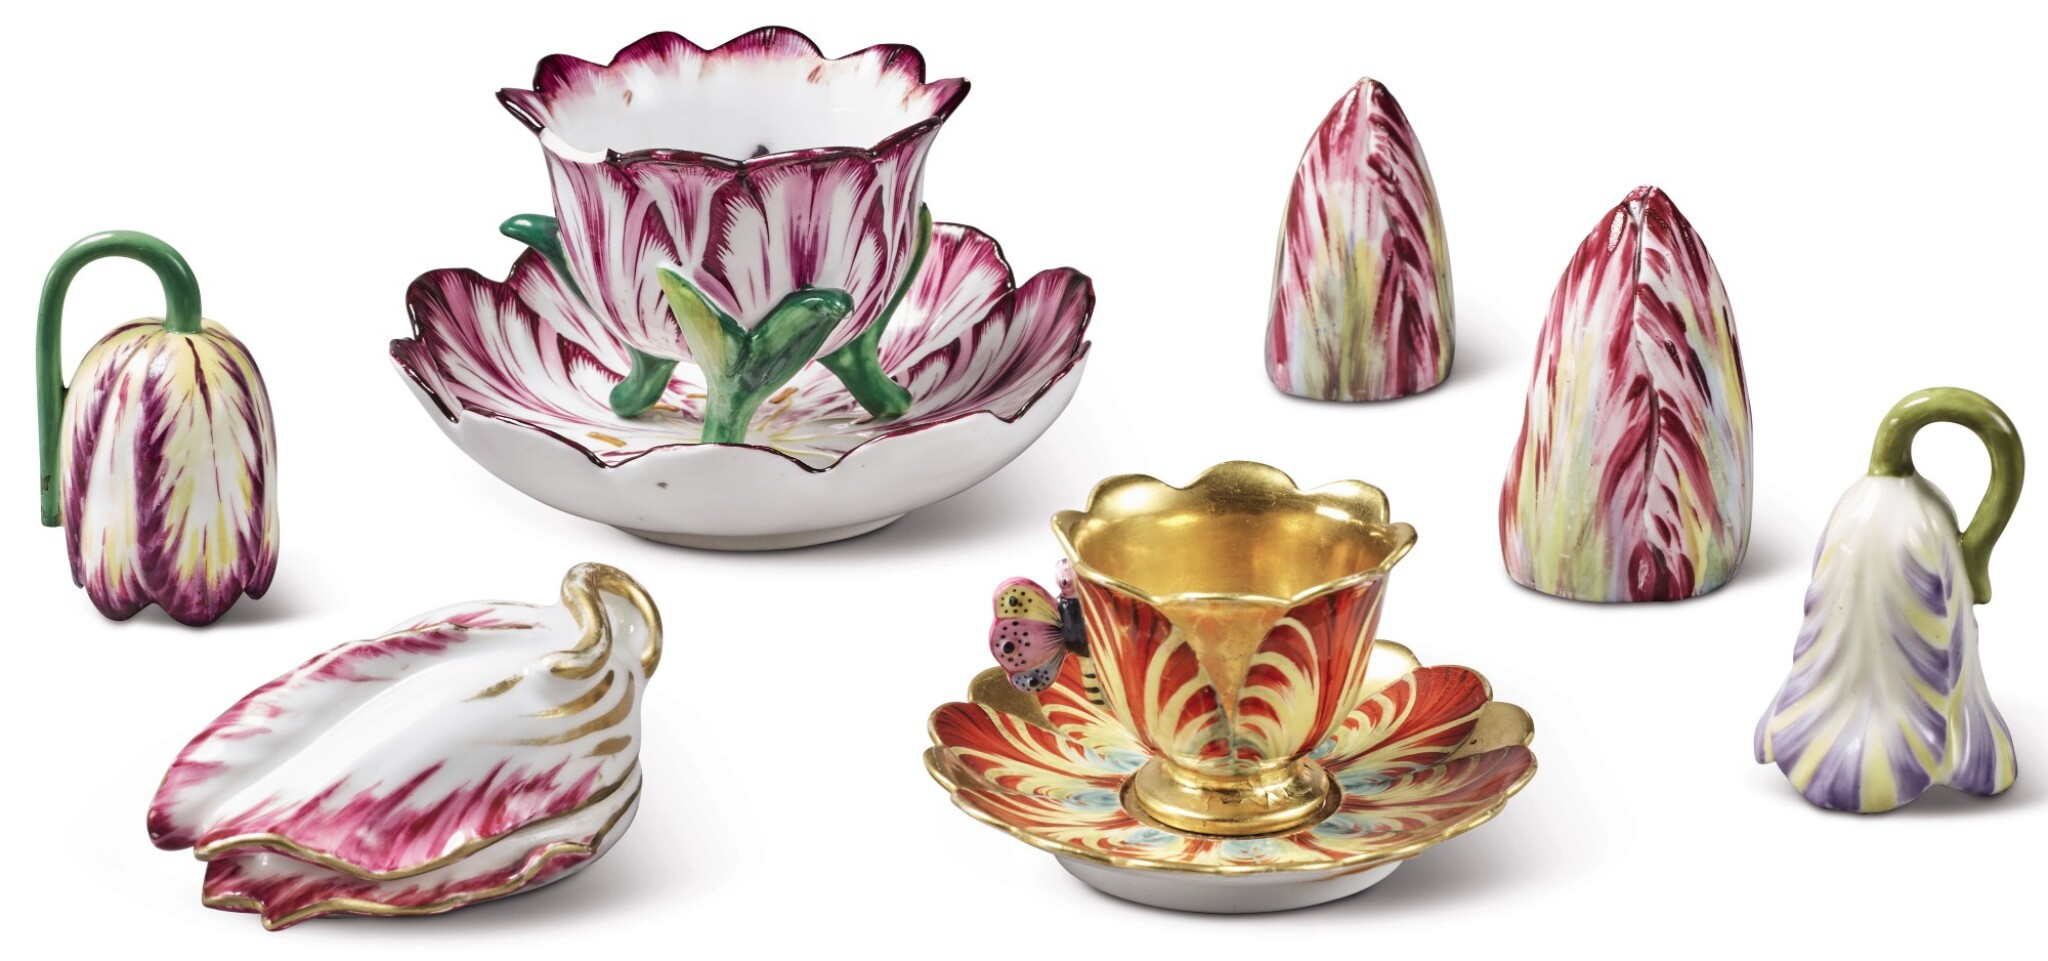 View full screen - View 1 of Lot 143. A GROUP OF ENGLISH PORCELAIN TULIP-WARES, EARLY 19TH CENTURY.